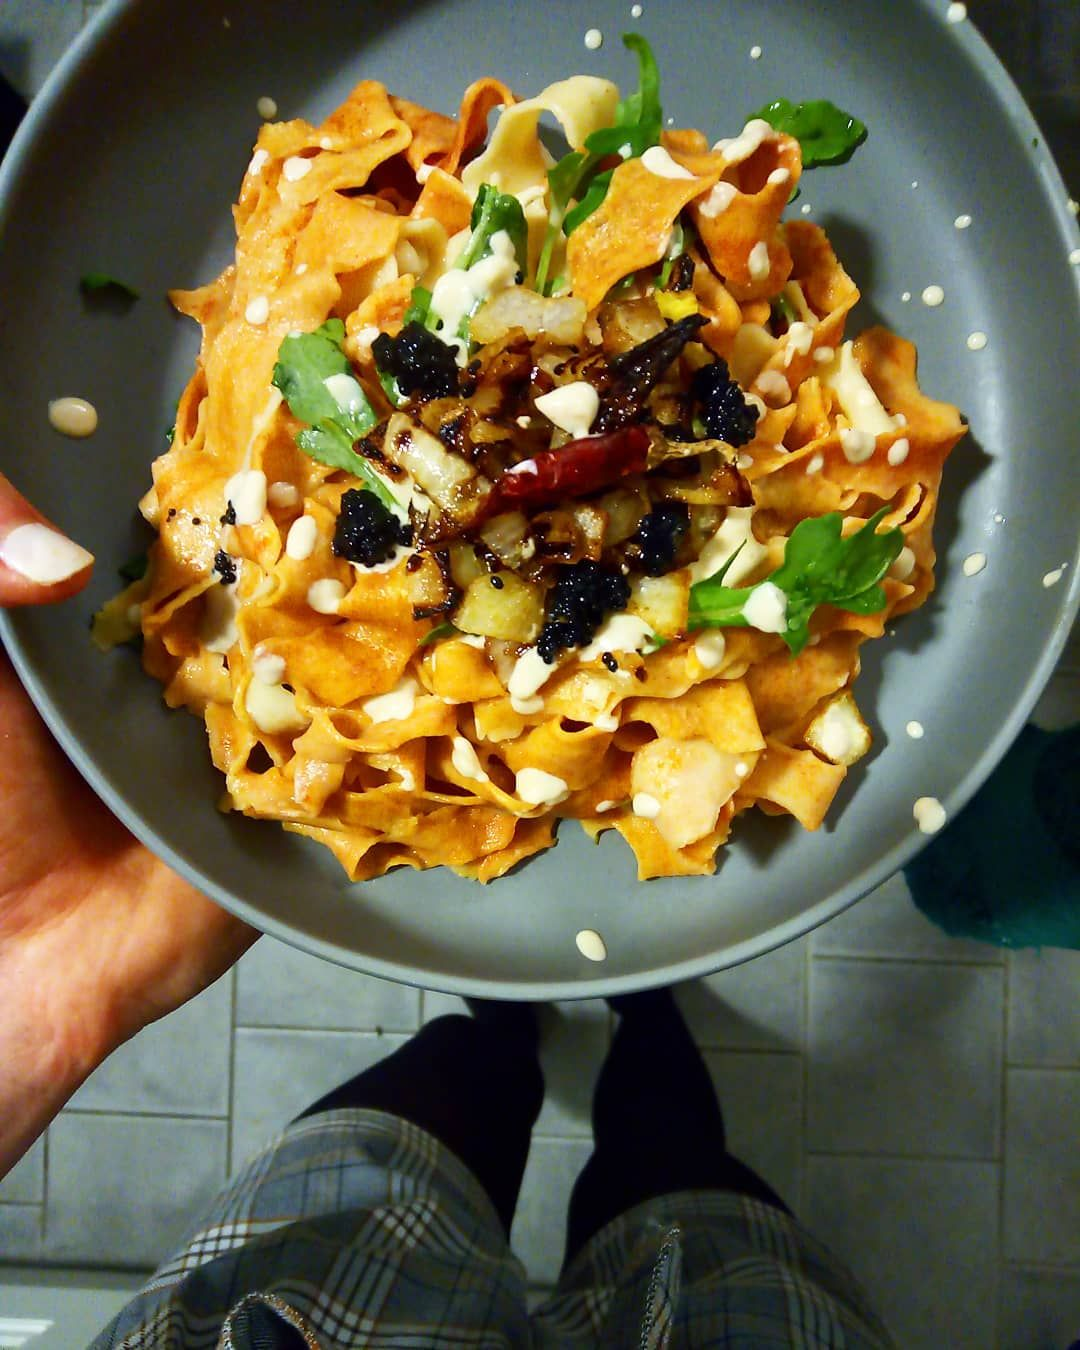 Homemade fresh pasta 🤤 I used paprika to make the pasta a little orange. With a mustard and parmesan sauce, caramelized onions, arugula, seaweed caviar